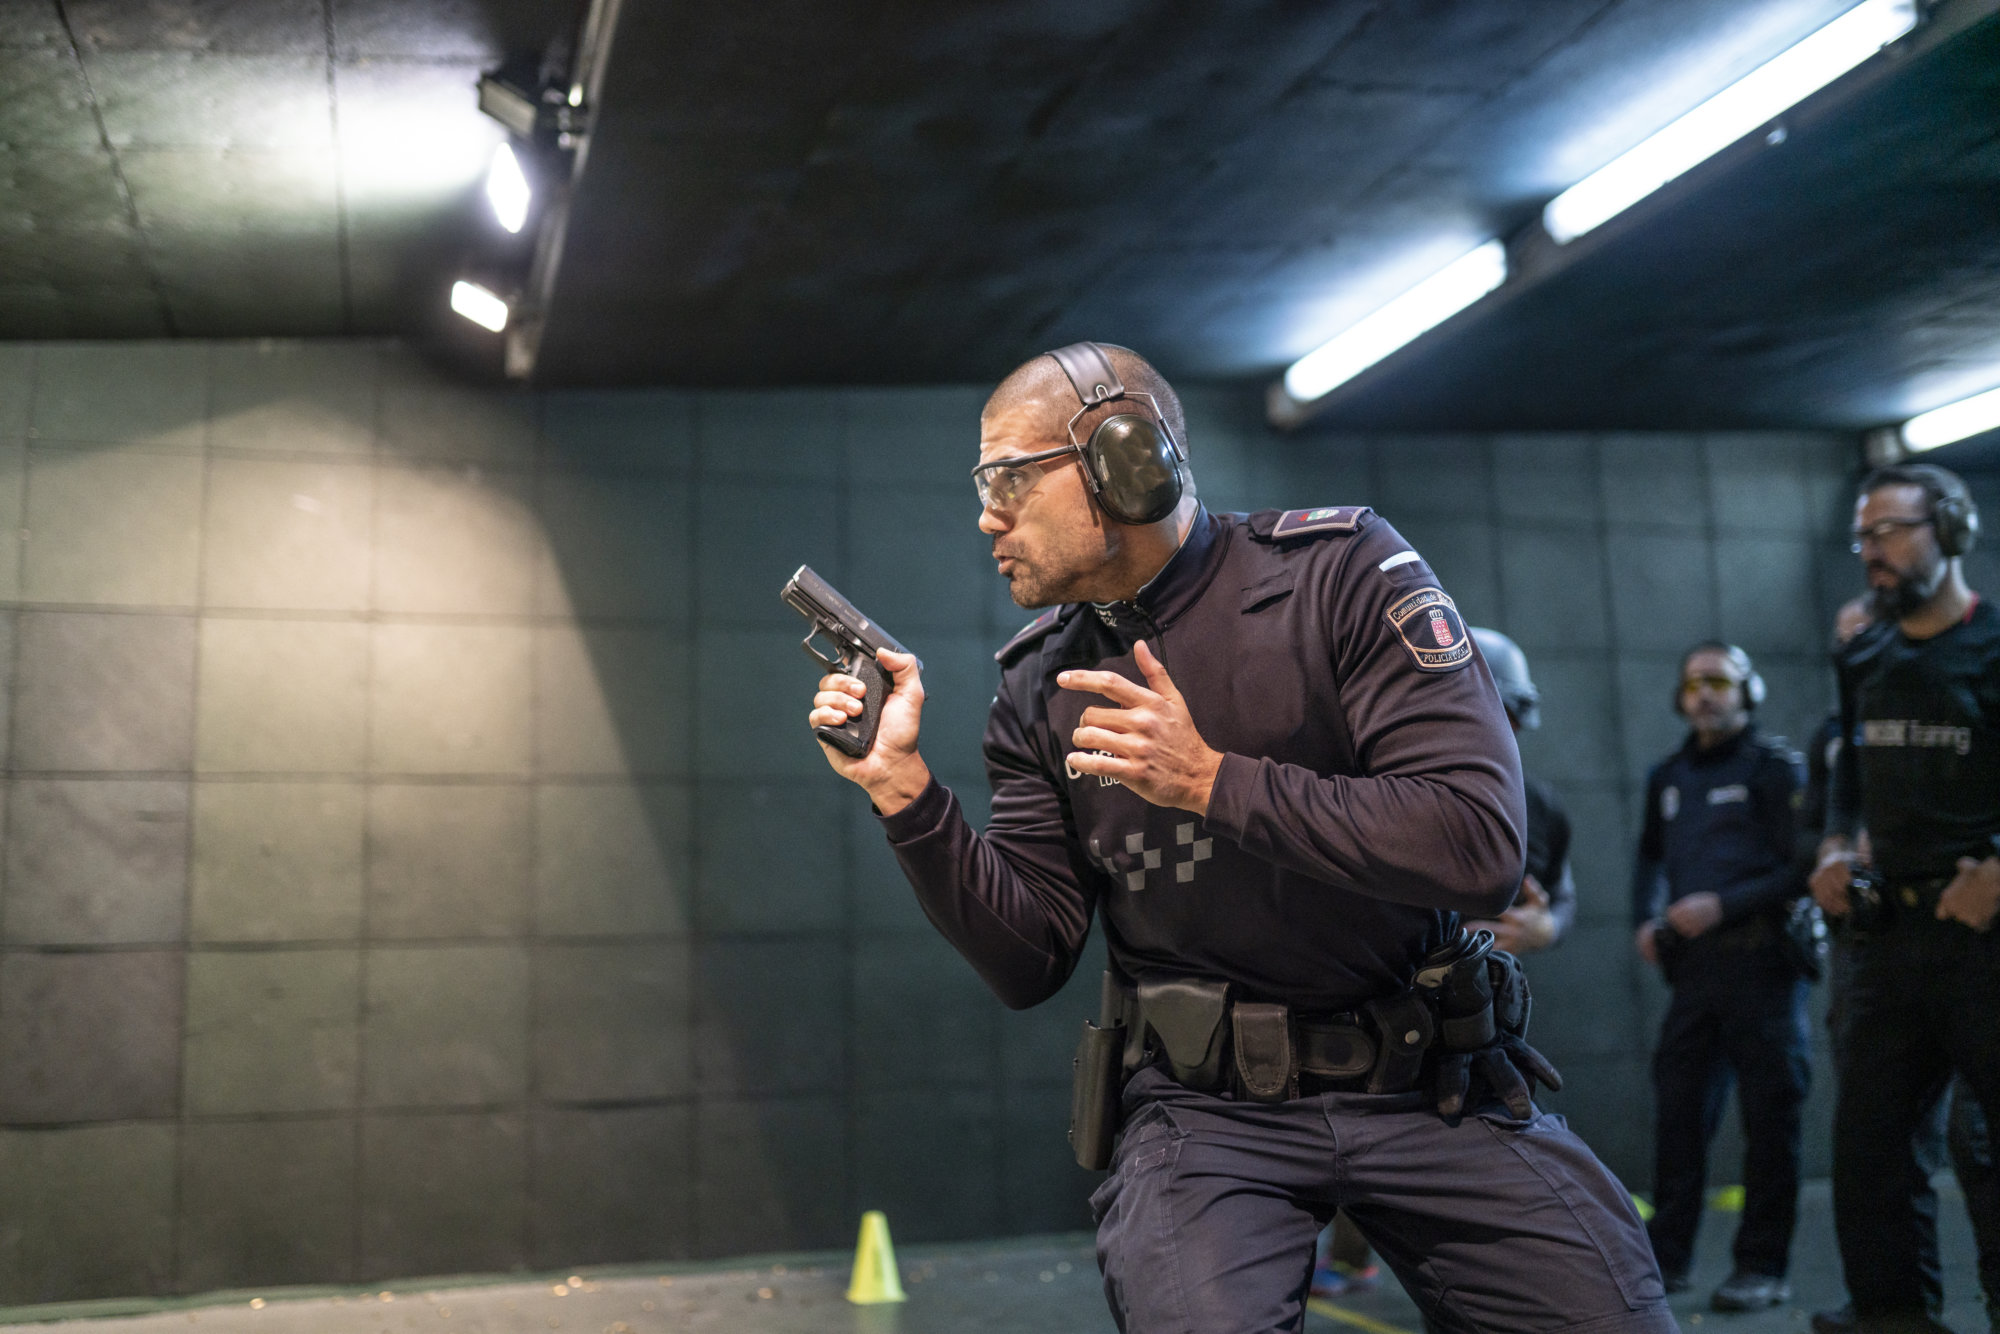 Police training in shooting gallery with short weapon.